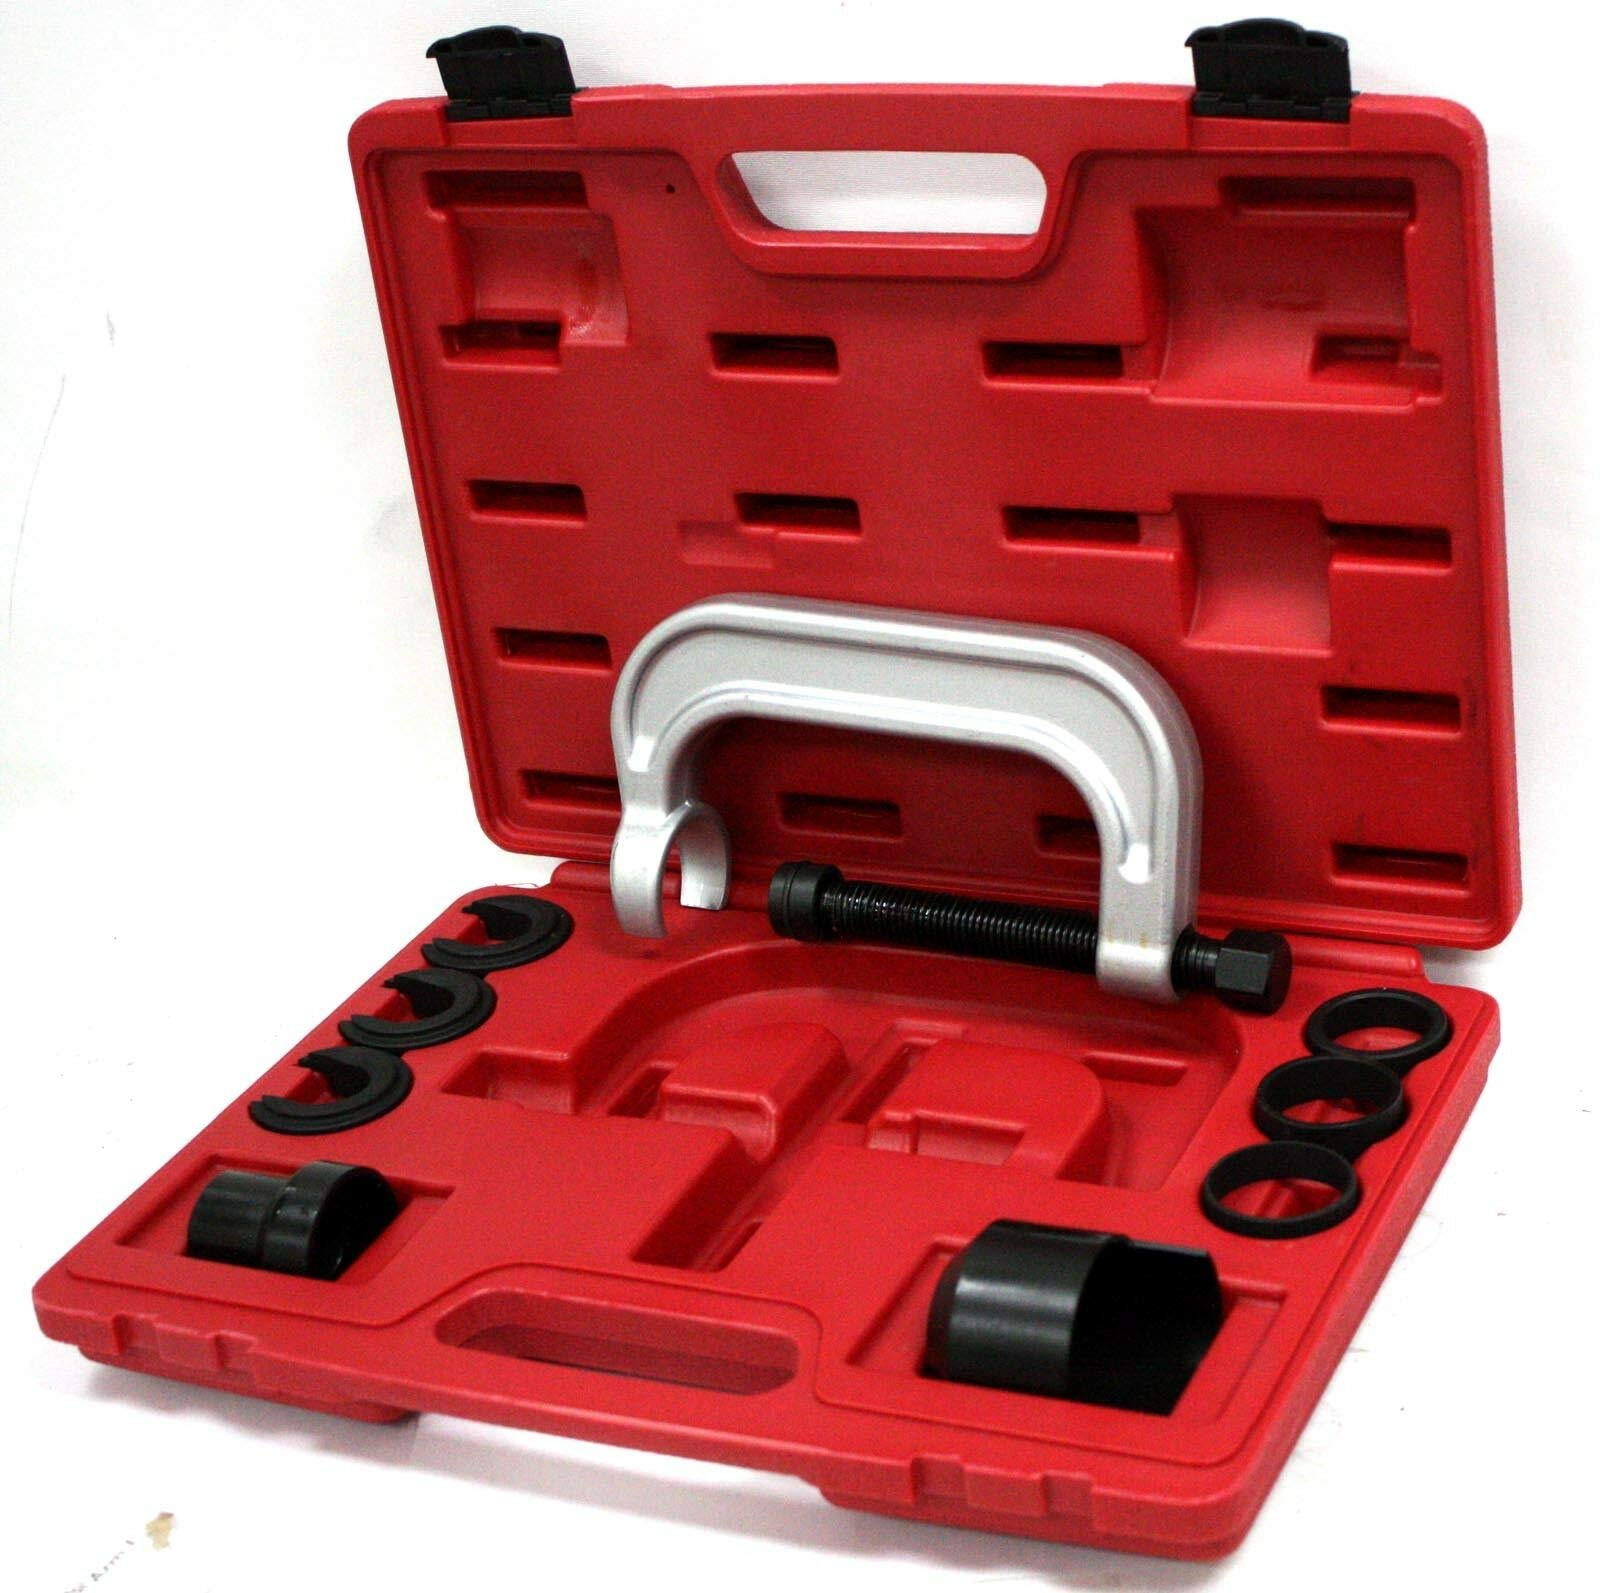 M2 Outlet Upper Control Arm Bushing Removal Installer Service Set with C Frame for Ford GM Chrysler by M2 Outlet (Image #1)